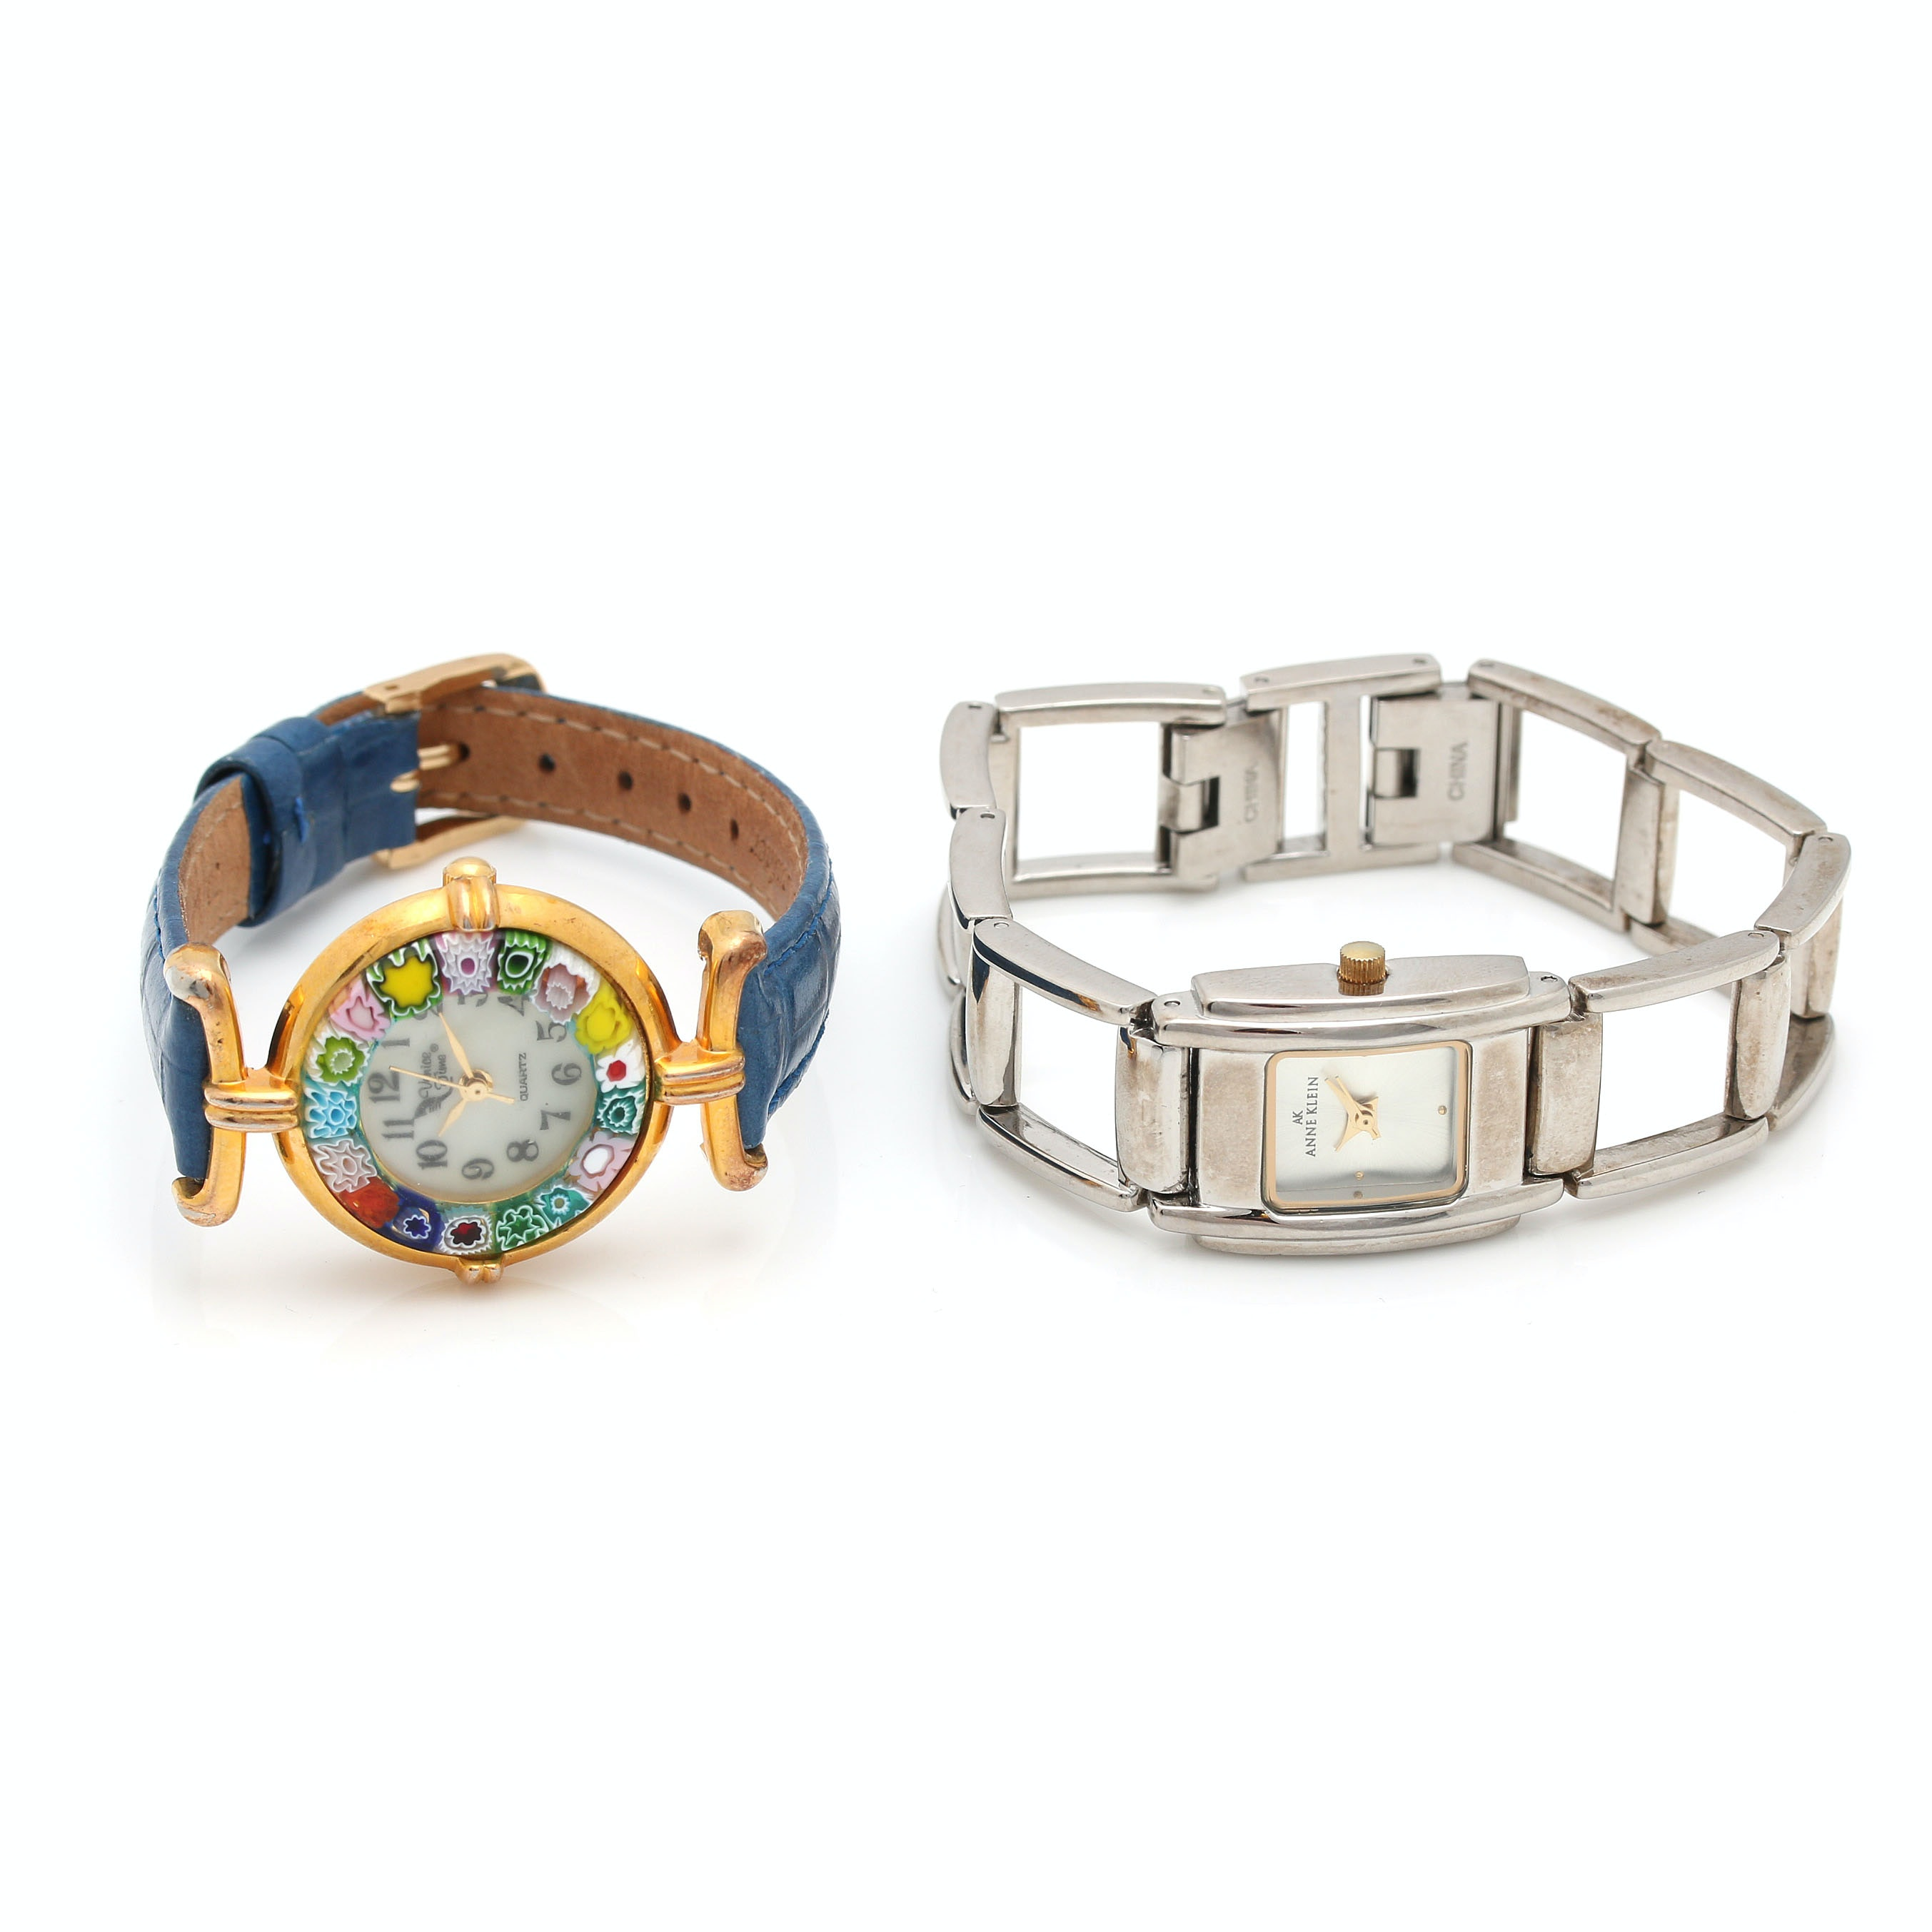 Wristwatch Selection Including Anne Klein and Venice Time